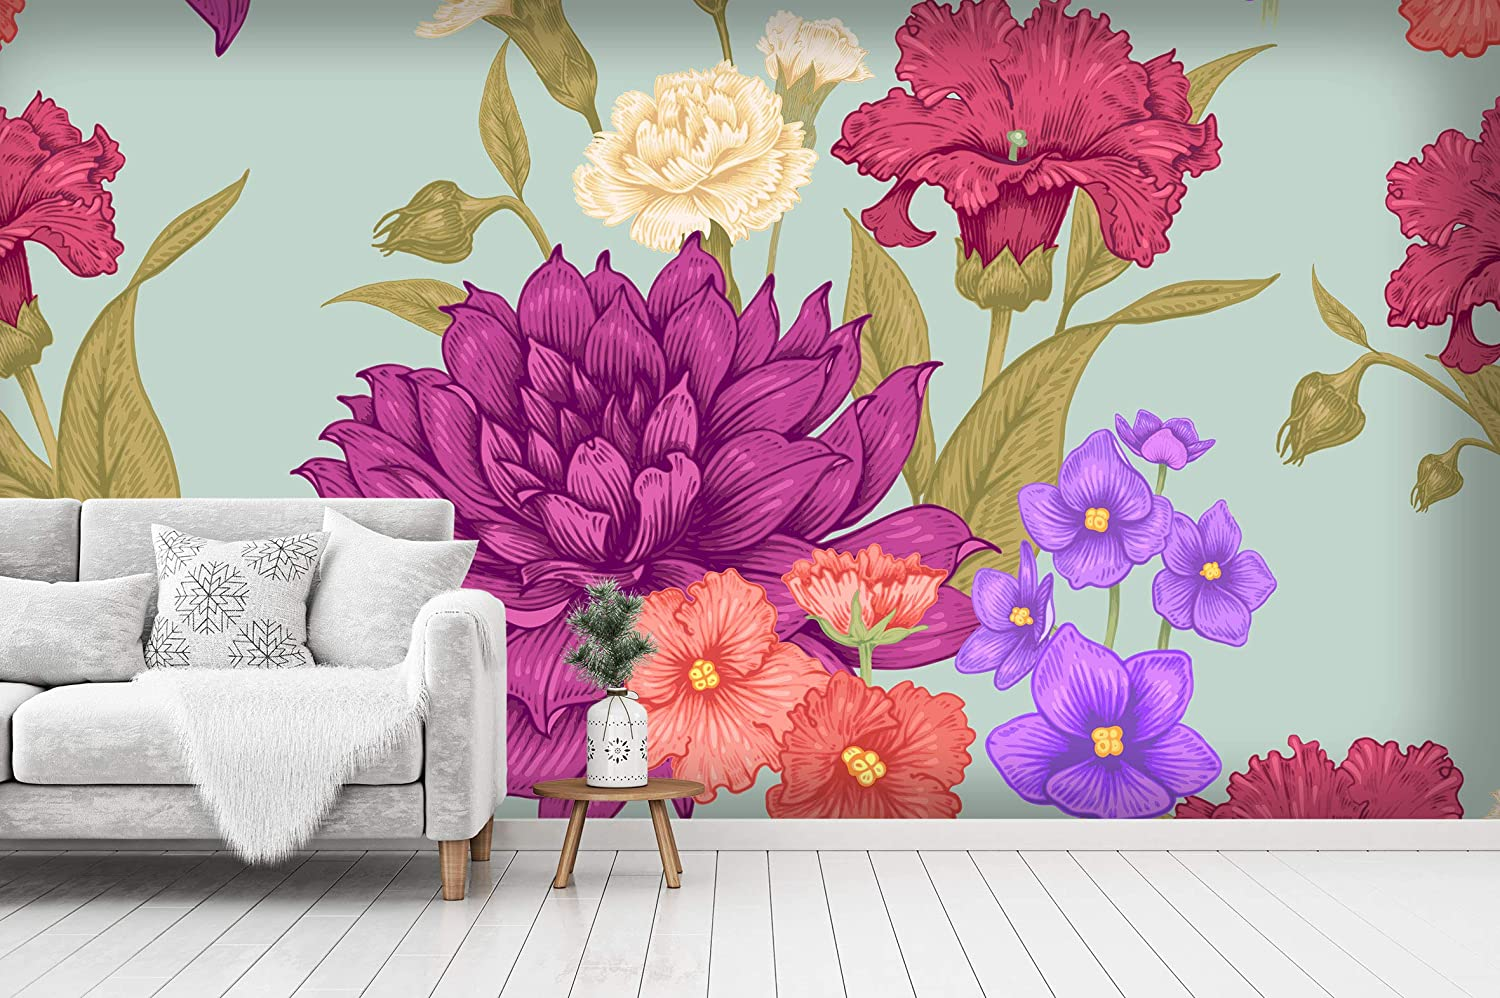 Wallpaper 3D Peel and Stick Self-Adhesive Wall Mural Floral f-B-0214-j-a